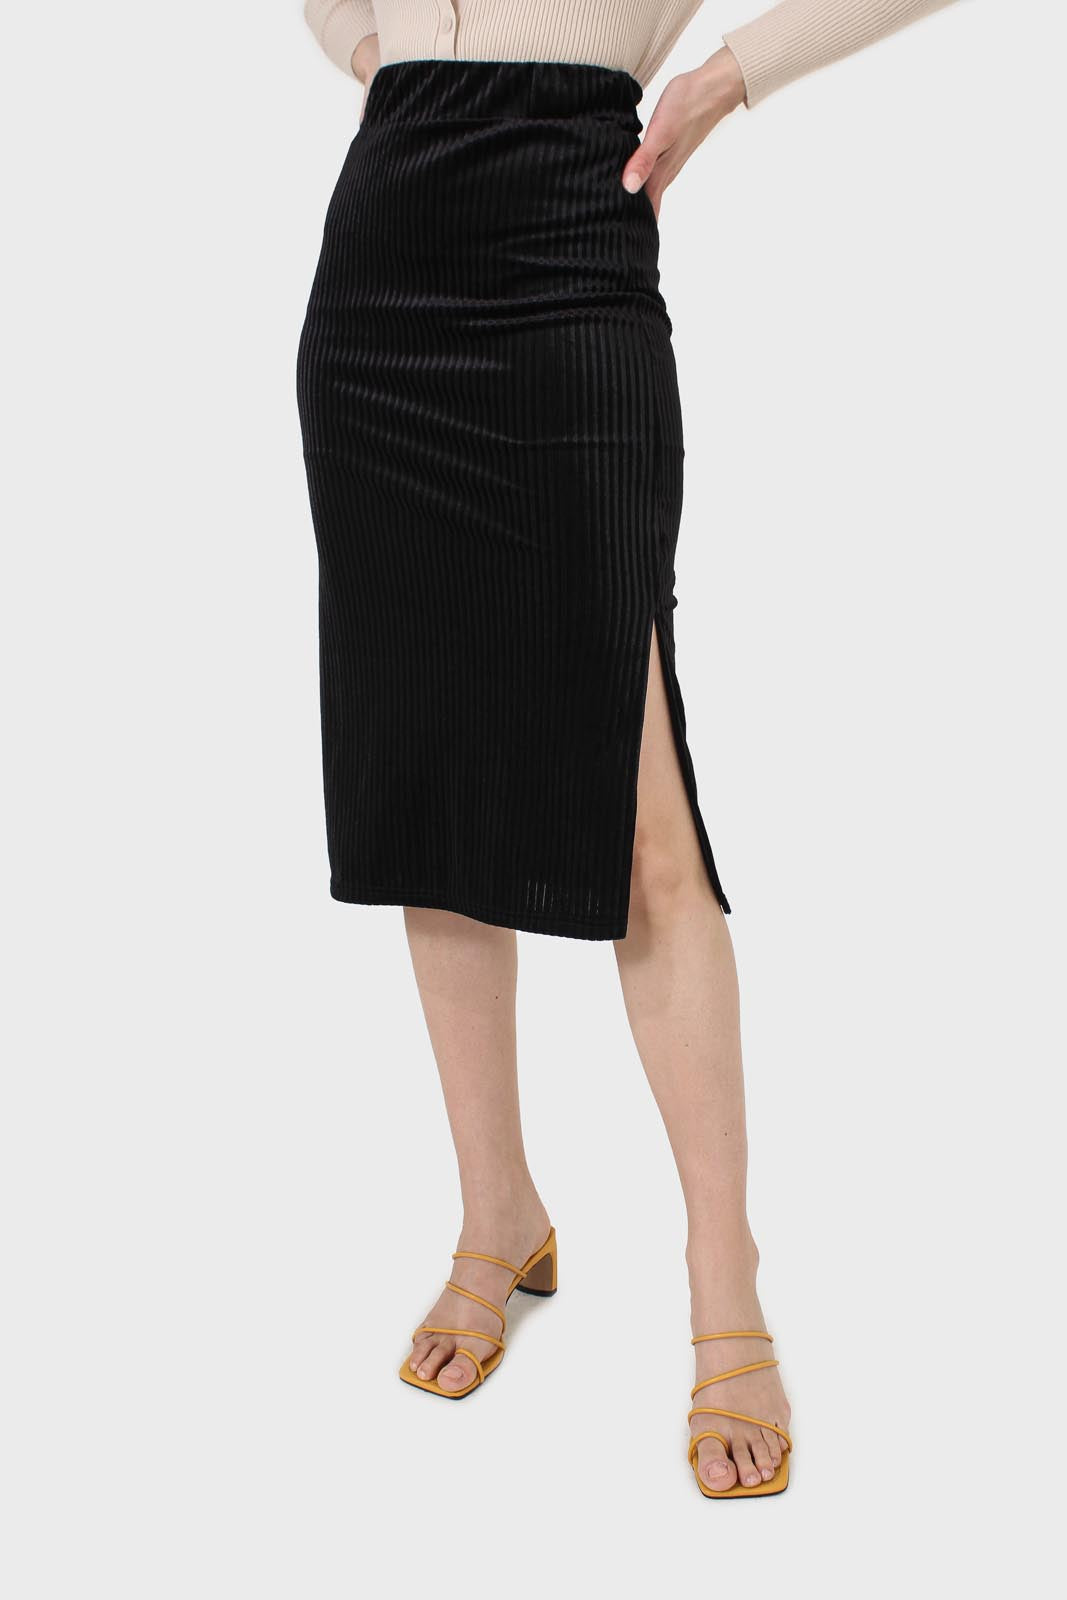 Black ribbed velvet pencil skirt1